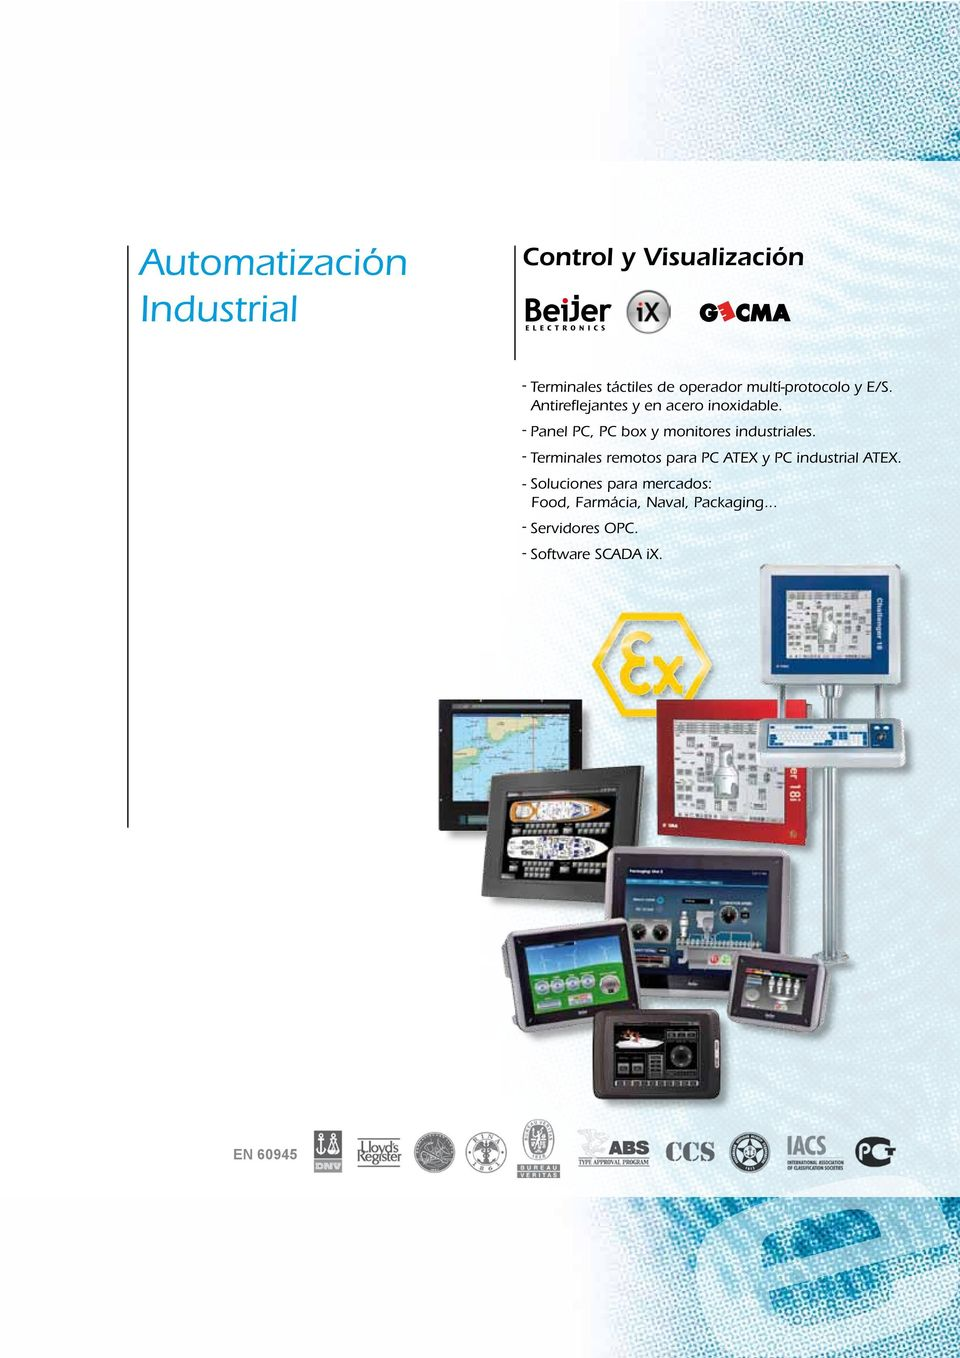 - Panel PC, PC box y monitores industriales.